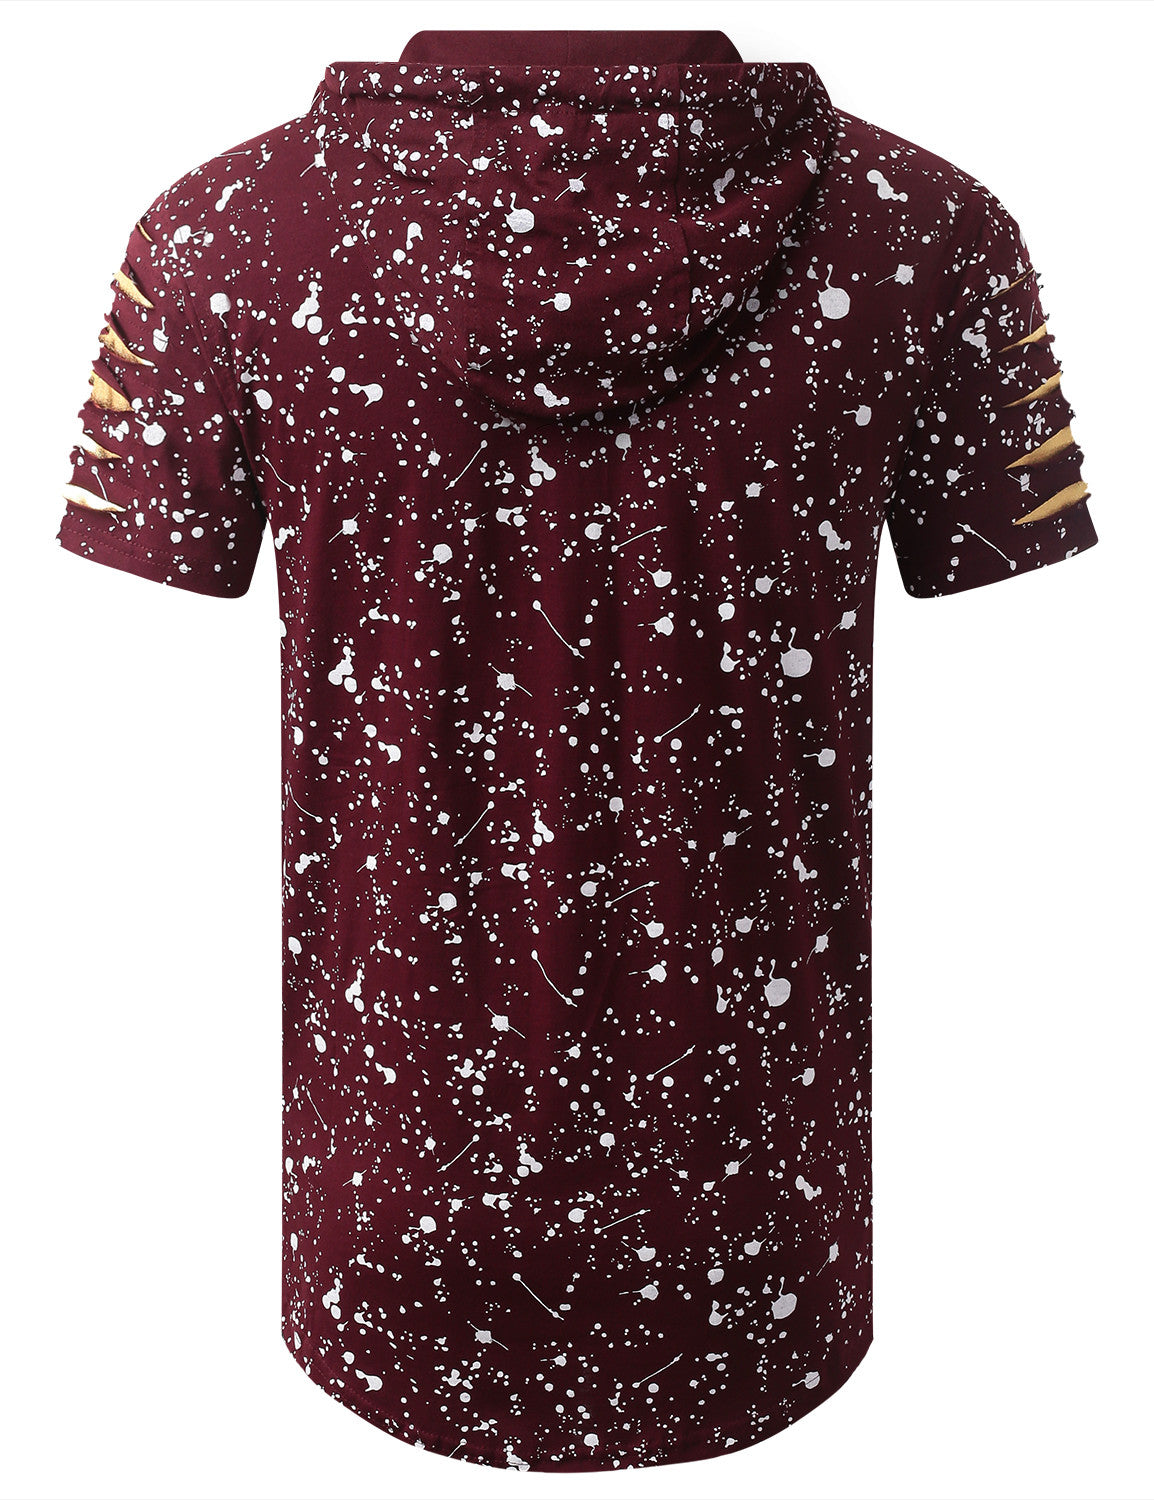 BURGUNDY Splatter Bulls Short Sleeve Hoodie - URBANCREWS